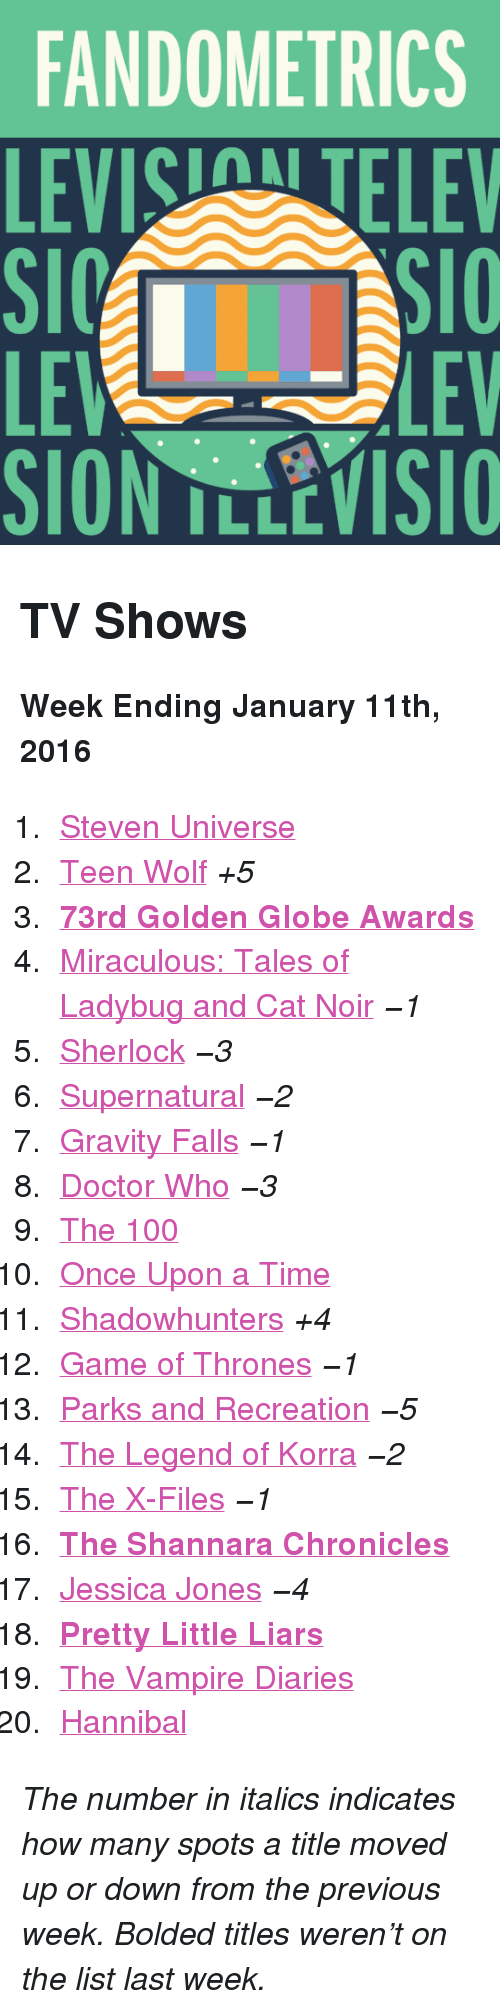 """Parks and Recreation: FANDOMETRICS  LEVIS TELEV  LE  SION TLLEVISIO  LEV <h2>TV Shows</h2><p><b>Week Ending January 11th, 2016</b></p><ol><li><a href=""""http://www.tumblr.com/search/steven%20universe"""">Steven Universe</a></li>  <li><a href=""""http://www.tumblr.com/search/teen%20wolf"""">Teen Wolf</a><i>+5</i></li>  <li><a href=""""http://www.tumblr.com/search/golden%20globes""""><b>73rd Golden Globe Awards</b></a></li>  <li><a href=""""http://www.tumblr.com/search/miraculous%20ladybug"""">Miraculous: Tales of Ladybug and Cat Noir</a><i>−1</i></li>  <li><a href=""""http://www.tumblr.com/search/sherlock"""">Sherlock</a><i>−3</i></li>  <li><a href=""""http://www.tumblr.com/search/supernatural"""">Supernatural</a><i>−2</i></li>  <li><a href=""""http://www.tumblr.com/search/gravity%20falls"""">Gravity Falls</a><i>−1</i></li>  <li><a href=""""http://www.tumblr.com/search/doctor%20who"""">Doctor Who</a><i>−3</i></li>  <li><a href=""""http://www.tumblr.com/search/the%20100"""">The 100</a></li>  <li><a href=""""http://www.tumblr.com/search/ouat"""">Once Upon a Time</a></li>  <li><a href=""""http://www.tumblr.com/search/shadowhunters"""">Shadowhunters</a><i>+4</i></li>  <li><a href=""""http://www.tumblr.com/search/game%20of%20thrones"""">Game of Thrones</a><i>−1</i></li>  <li><a href=""""http://www.tumblr.com/search/parks%20and%20recreation"""">Parks and Recreation</a><i>−5</i></li>  <li><a href=""""http://www.tumblr.com/search/legend%20of%20korra"""">The Legend of Korra</a><i>−2</i></li>  <li><a href=""""http://www.tumblr.com/search/x%20files"""">The X-Files</a><i>−1</i></li>  <li><a href=""""http://www.tumblr.com/search/the%20shannara%20chronicles""""><b>The Shannara Chronicles</b></a></li>  <li><a href=""""http://www.tumblr.com/search/jessica%20jones"""">Jessica Jones</a><i>−4</i></li>  <li><a href=""""http://www.tumblr.com/search/pretty%20little%20liars""""><b>Pretty Little Liars</b></a></li>  <li><a href=""""http://www.tumblr.com/search/the%20vampire%20diaries"""">The Vampire Diaries</a></li>  <li><a href=""""http://www.tumblr.com/search/hannibal"""">Hannibal</a></li></ol><p><i>The nu"""